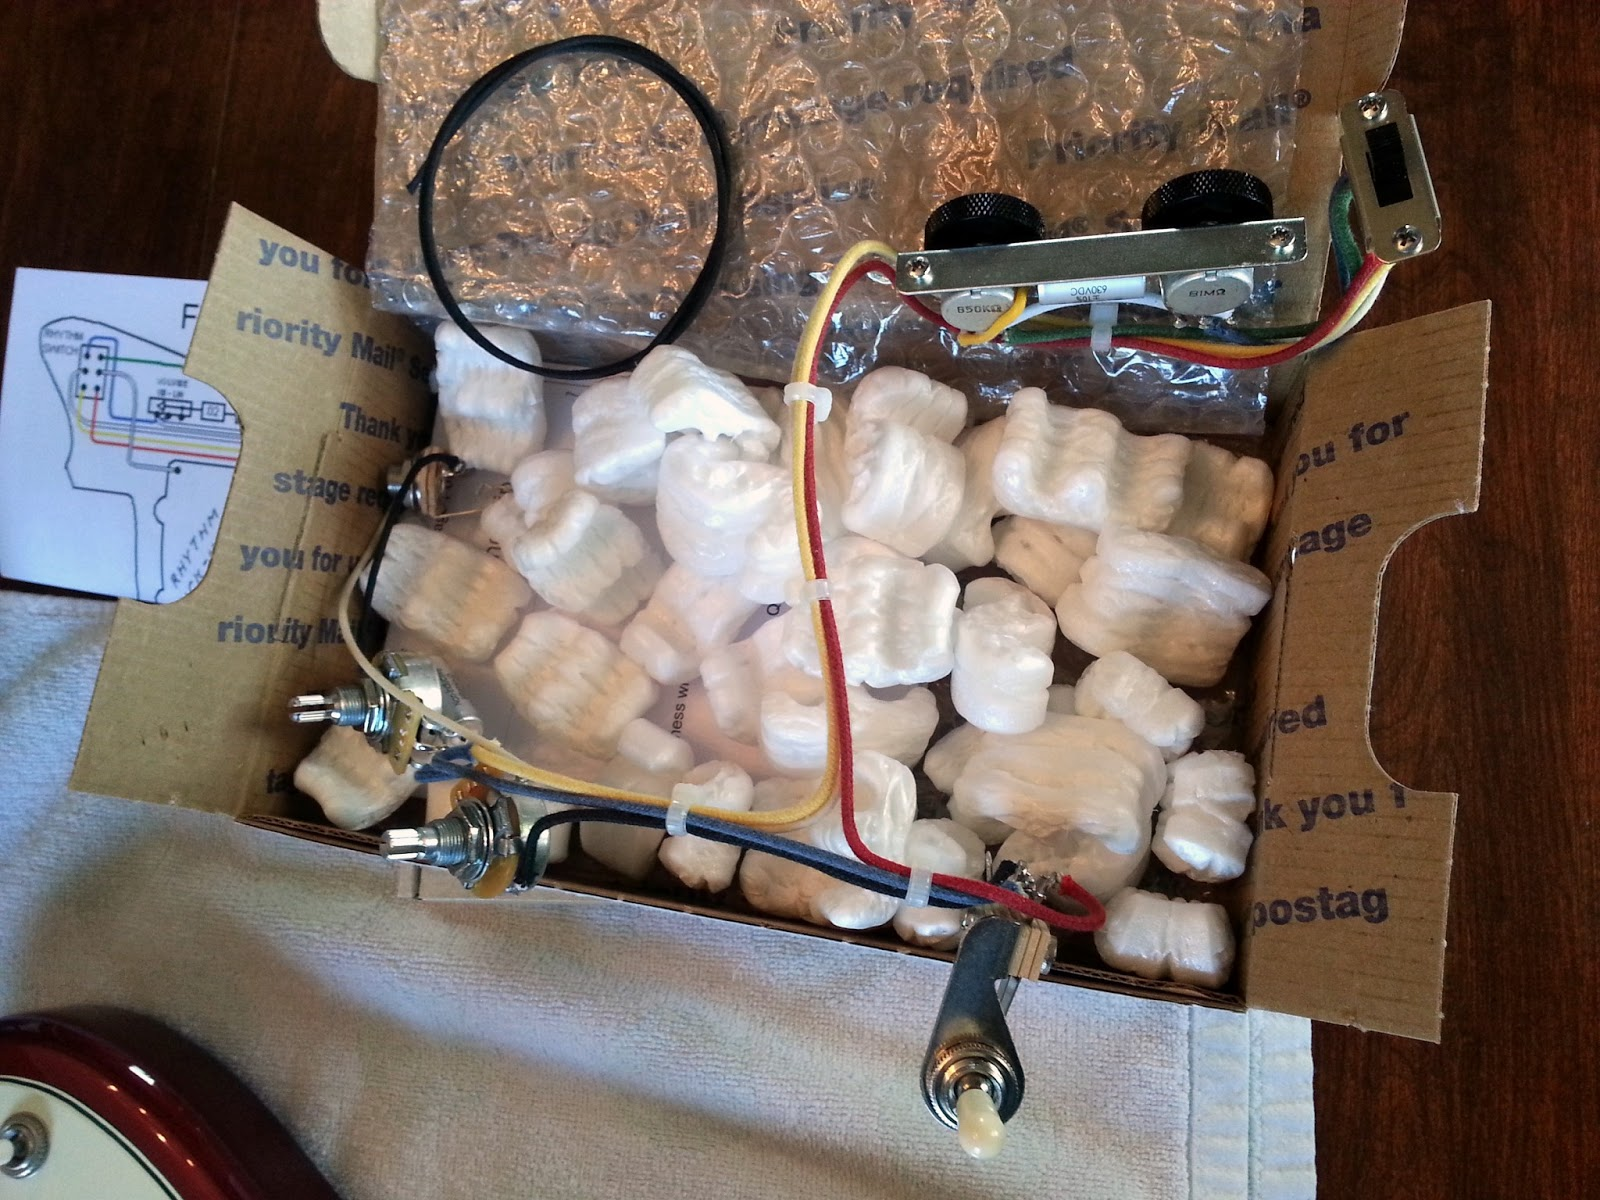 Upgrading ALL Fender Jazzmaster wiring and electronics in ... on fender jaguar manual, fender jaguar switches, fender jaguar wiring kit, fender esquire wiring harness, fender jaguar hardware, fender stratocaster wiring harness,